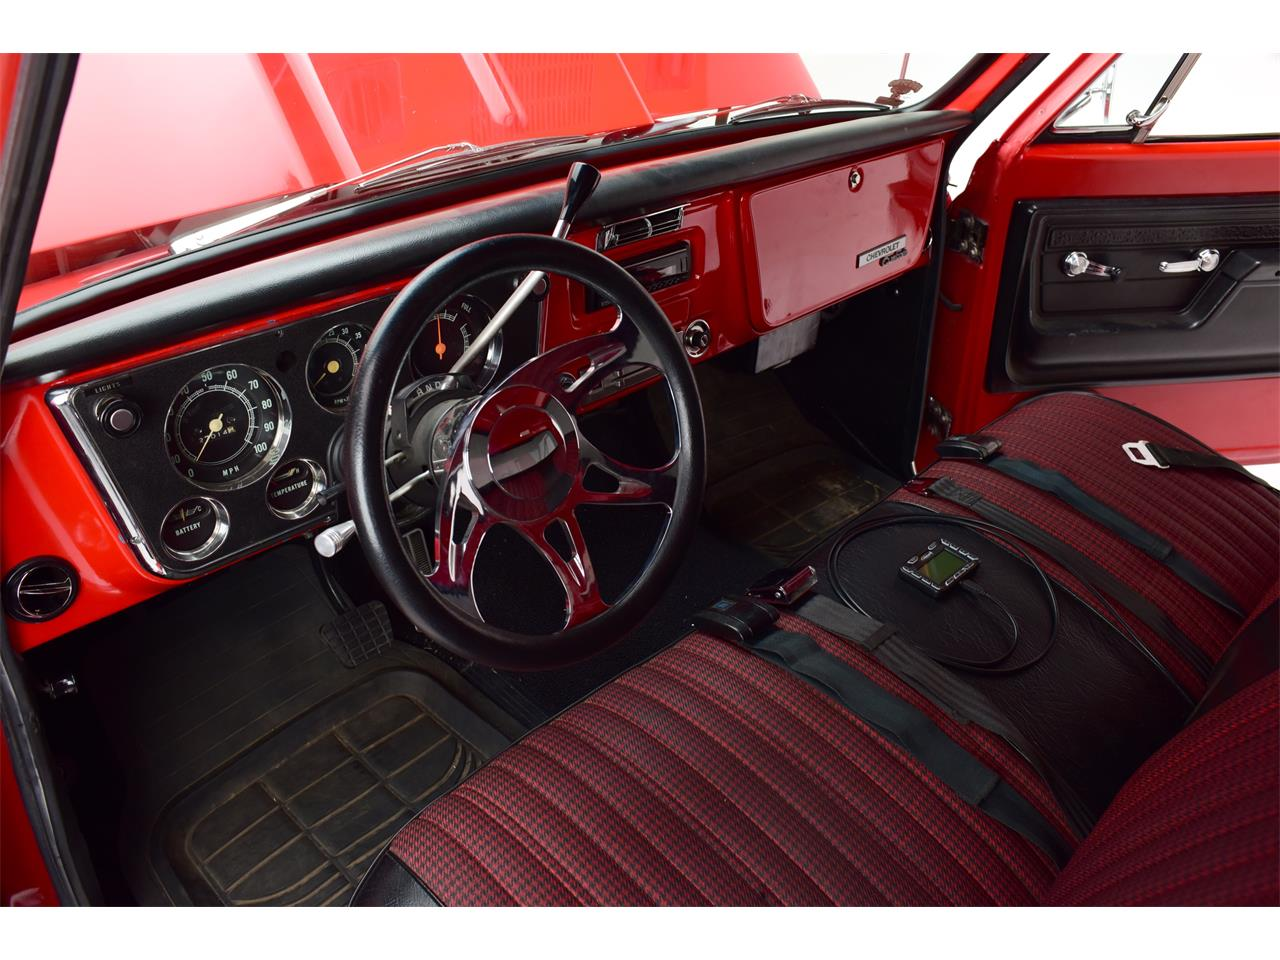 Large Picture of 1972 Chevrolet C/K 10 located in Scottsdale Arizona - $47,400.00 - LB38